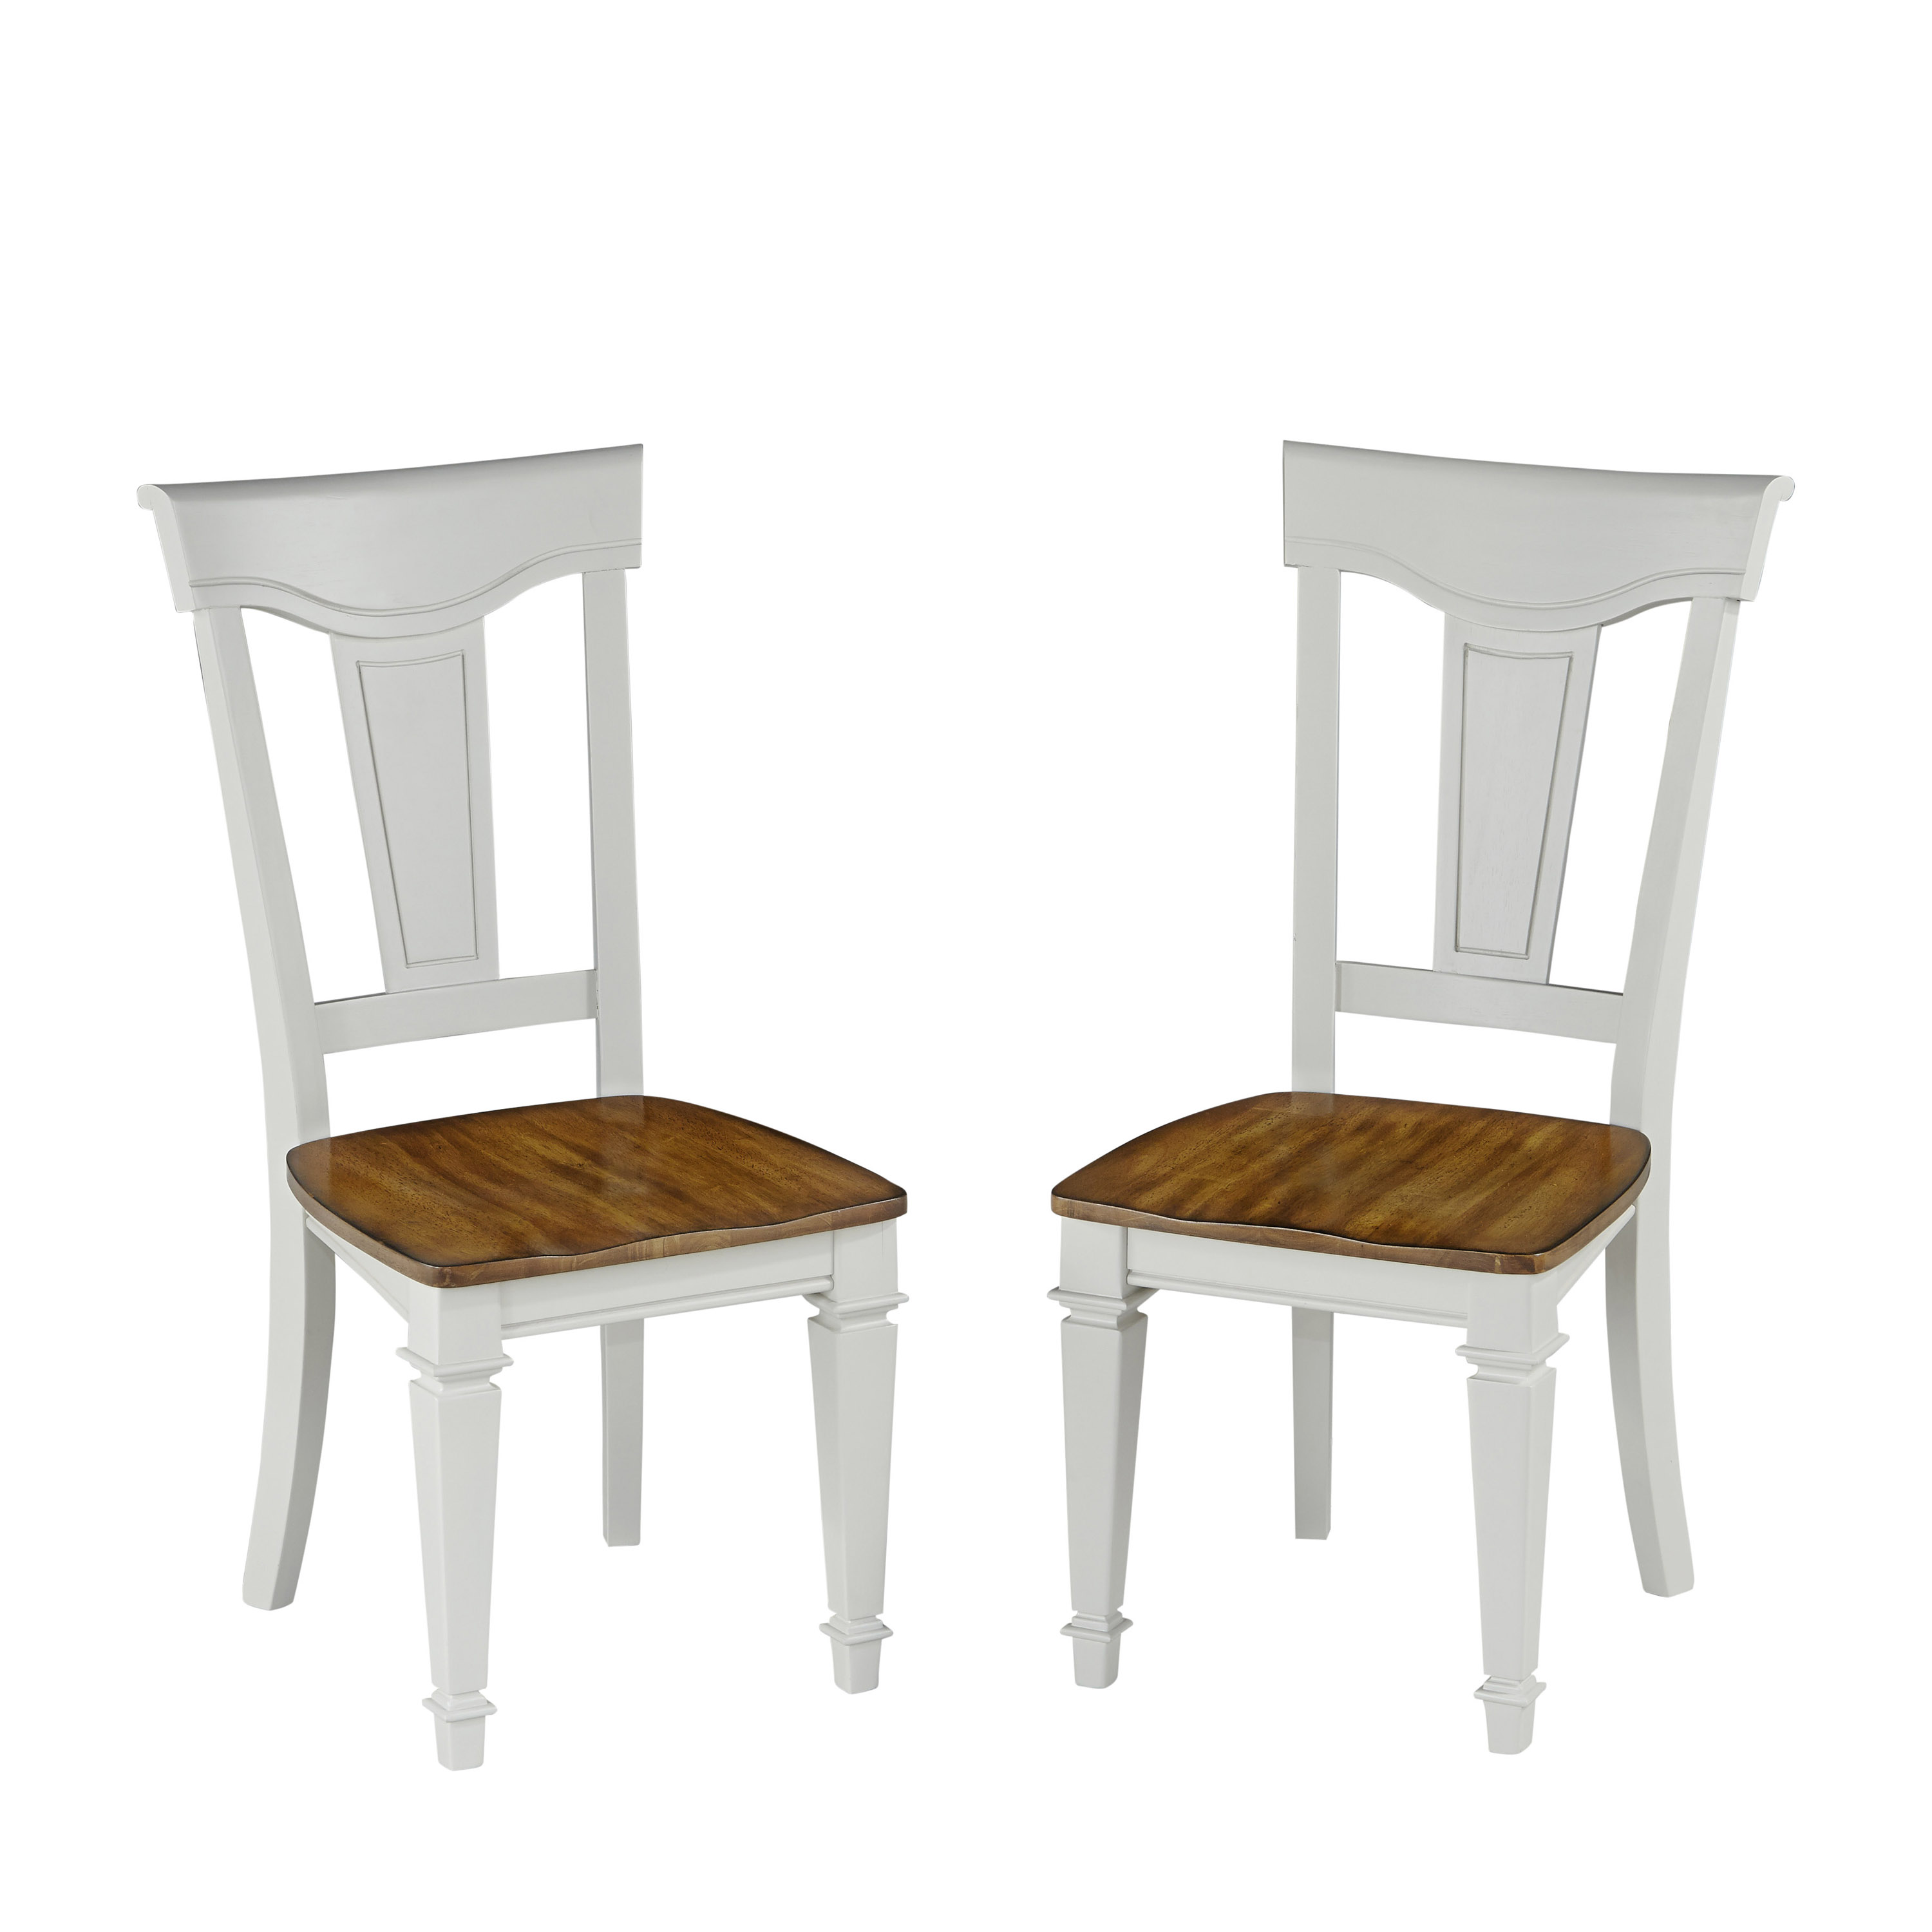 Home Styles White and Oak Americana Dining Chair Pair